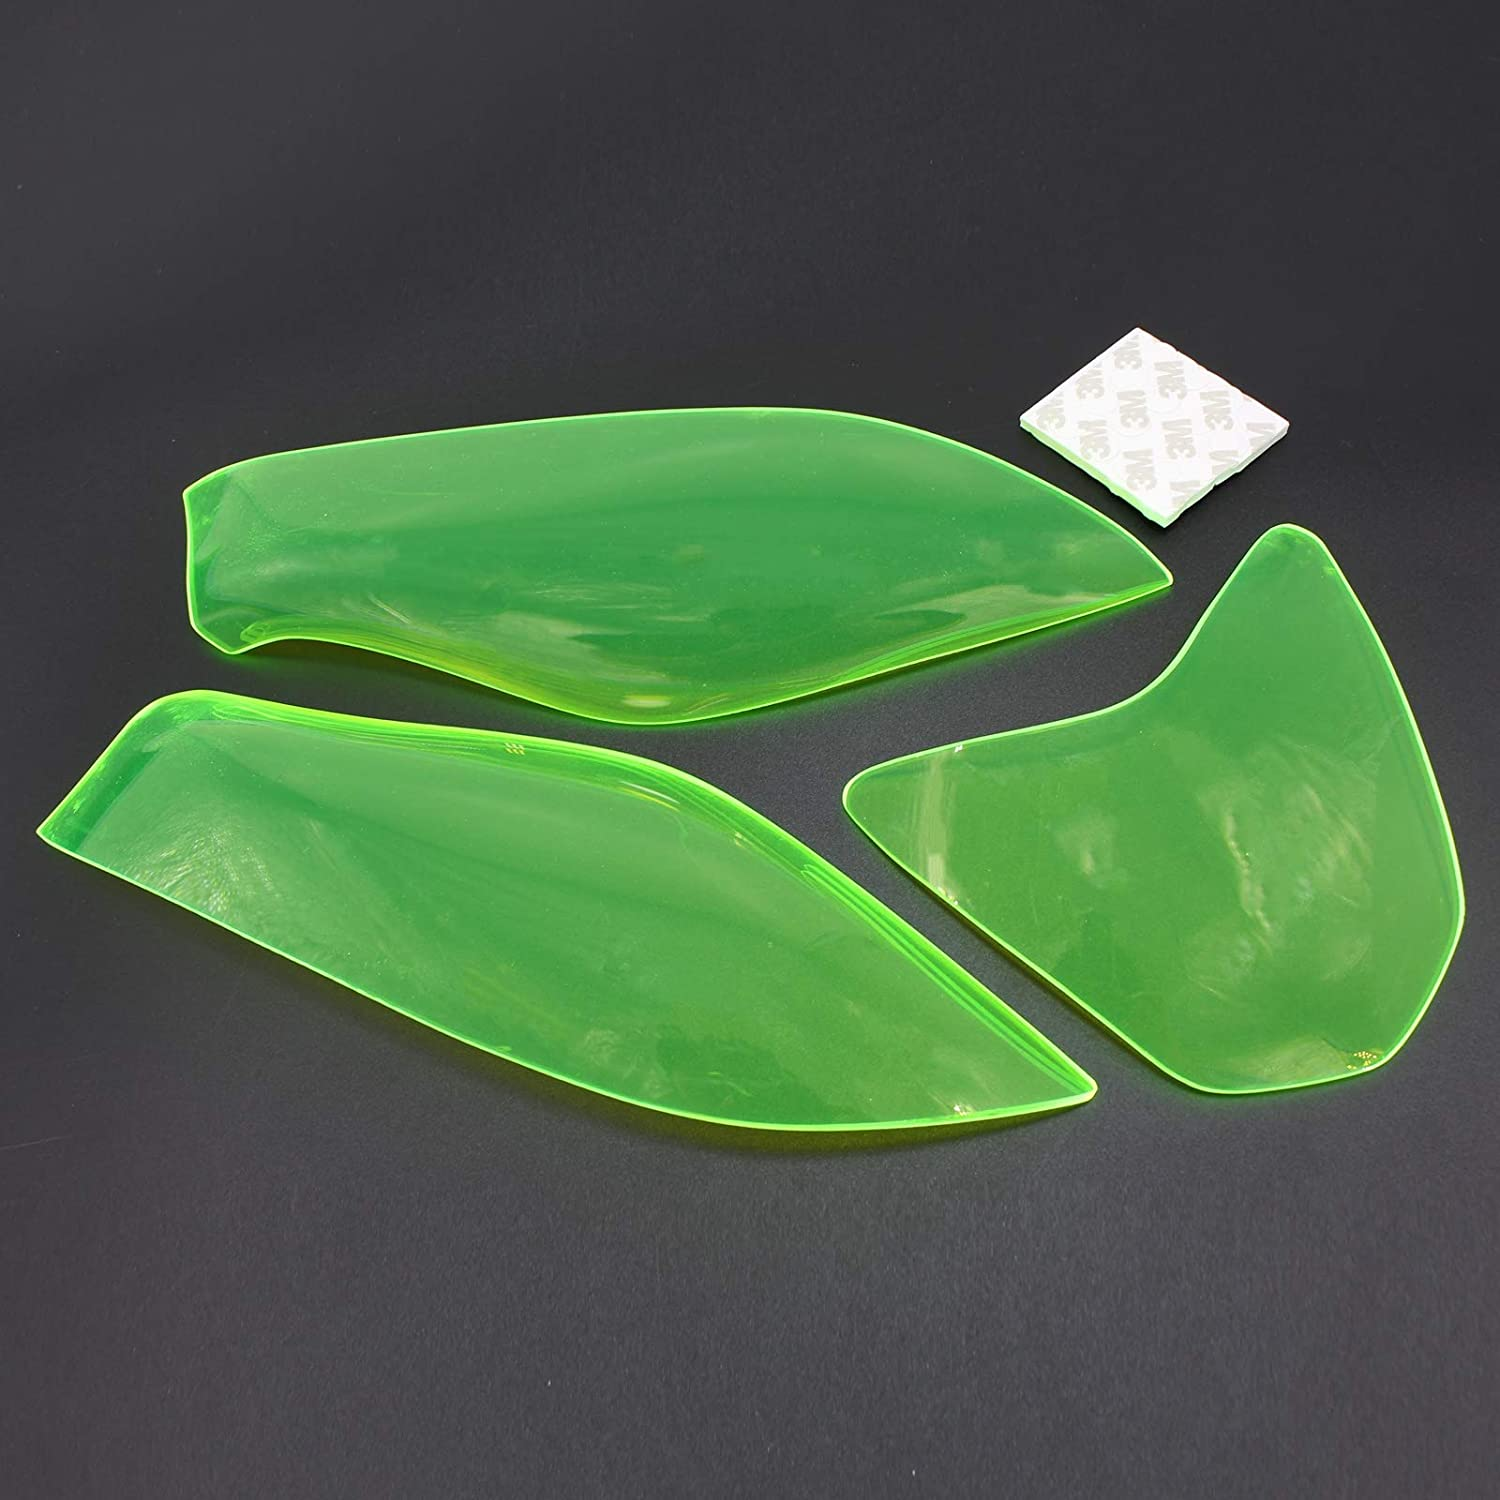 For Aprilia RSV4 2011-2014 Smoke Front Headlight Screen Protection Cover Lens